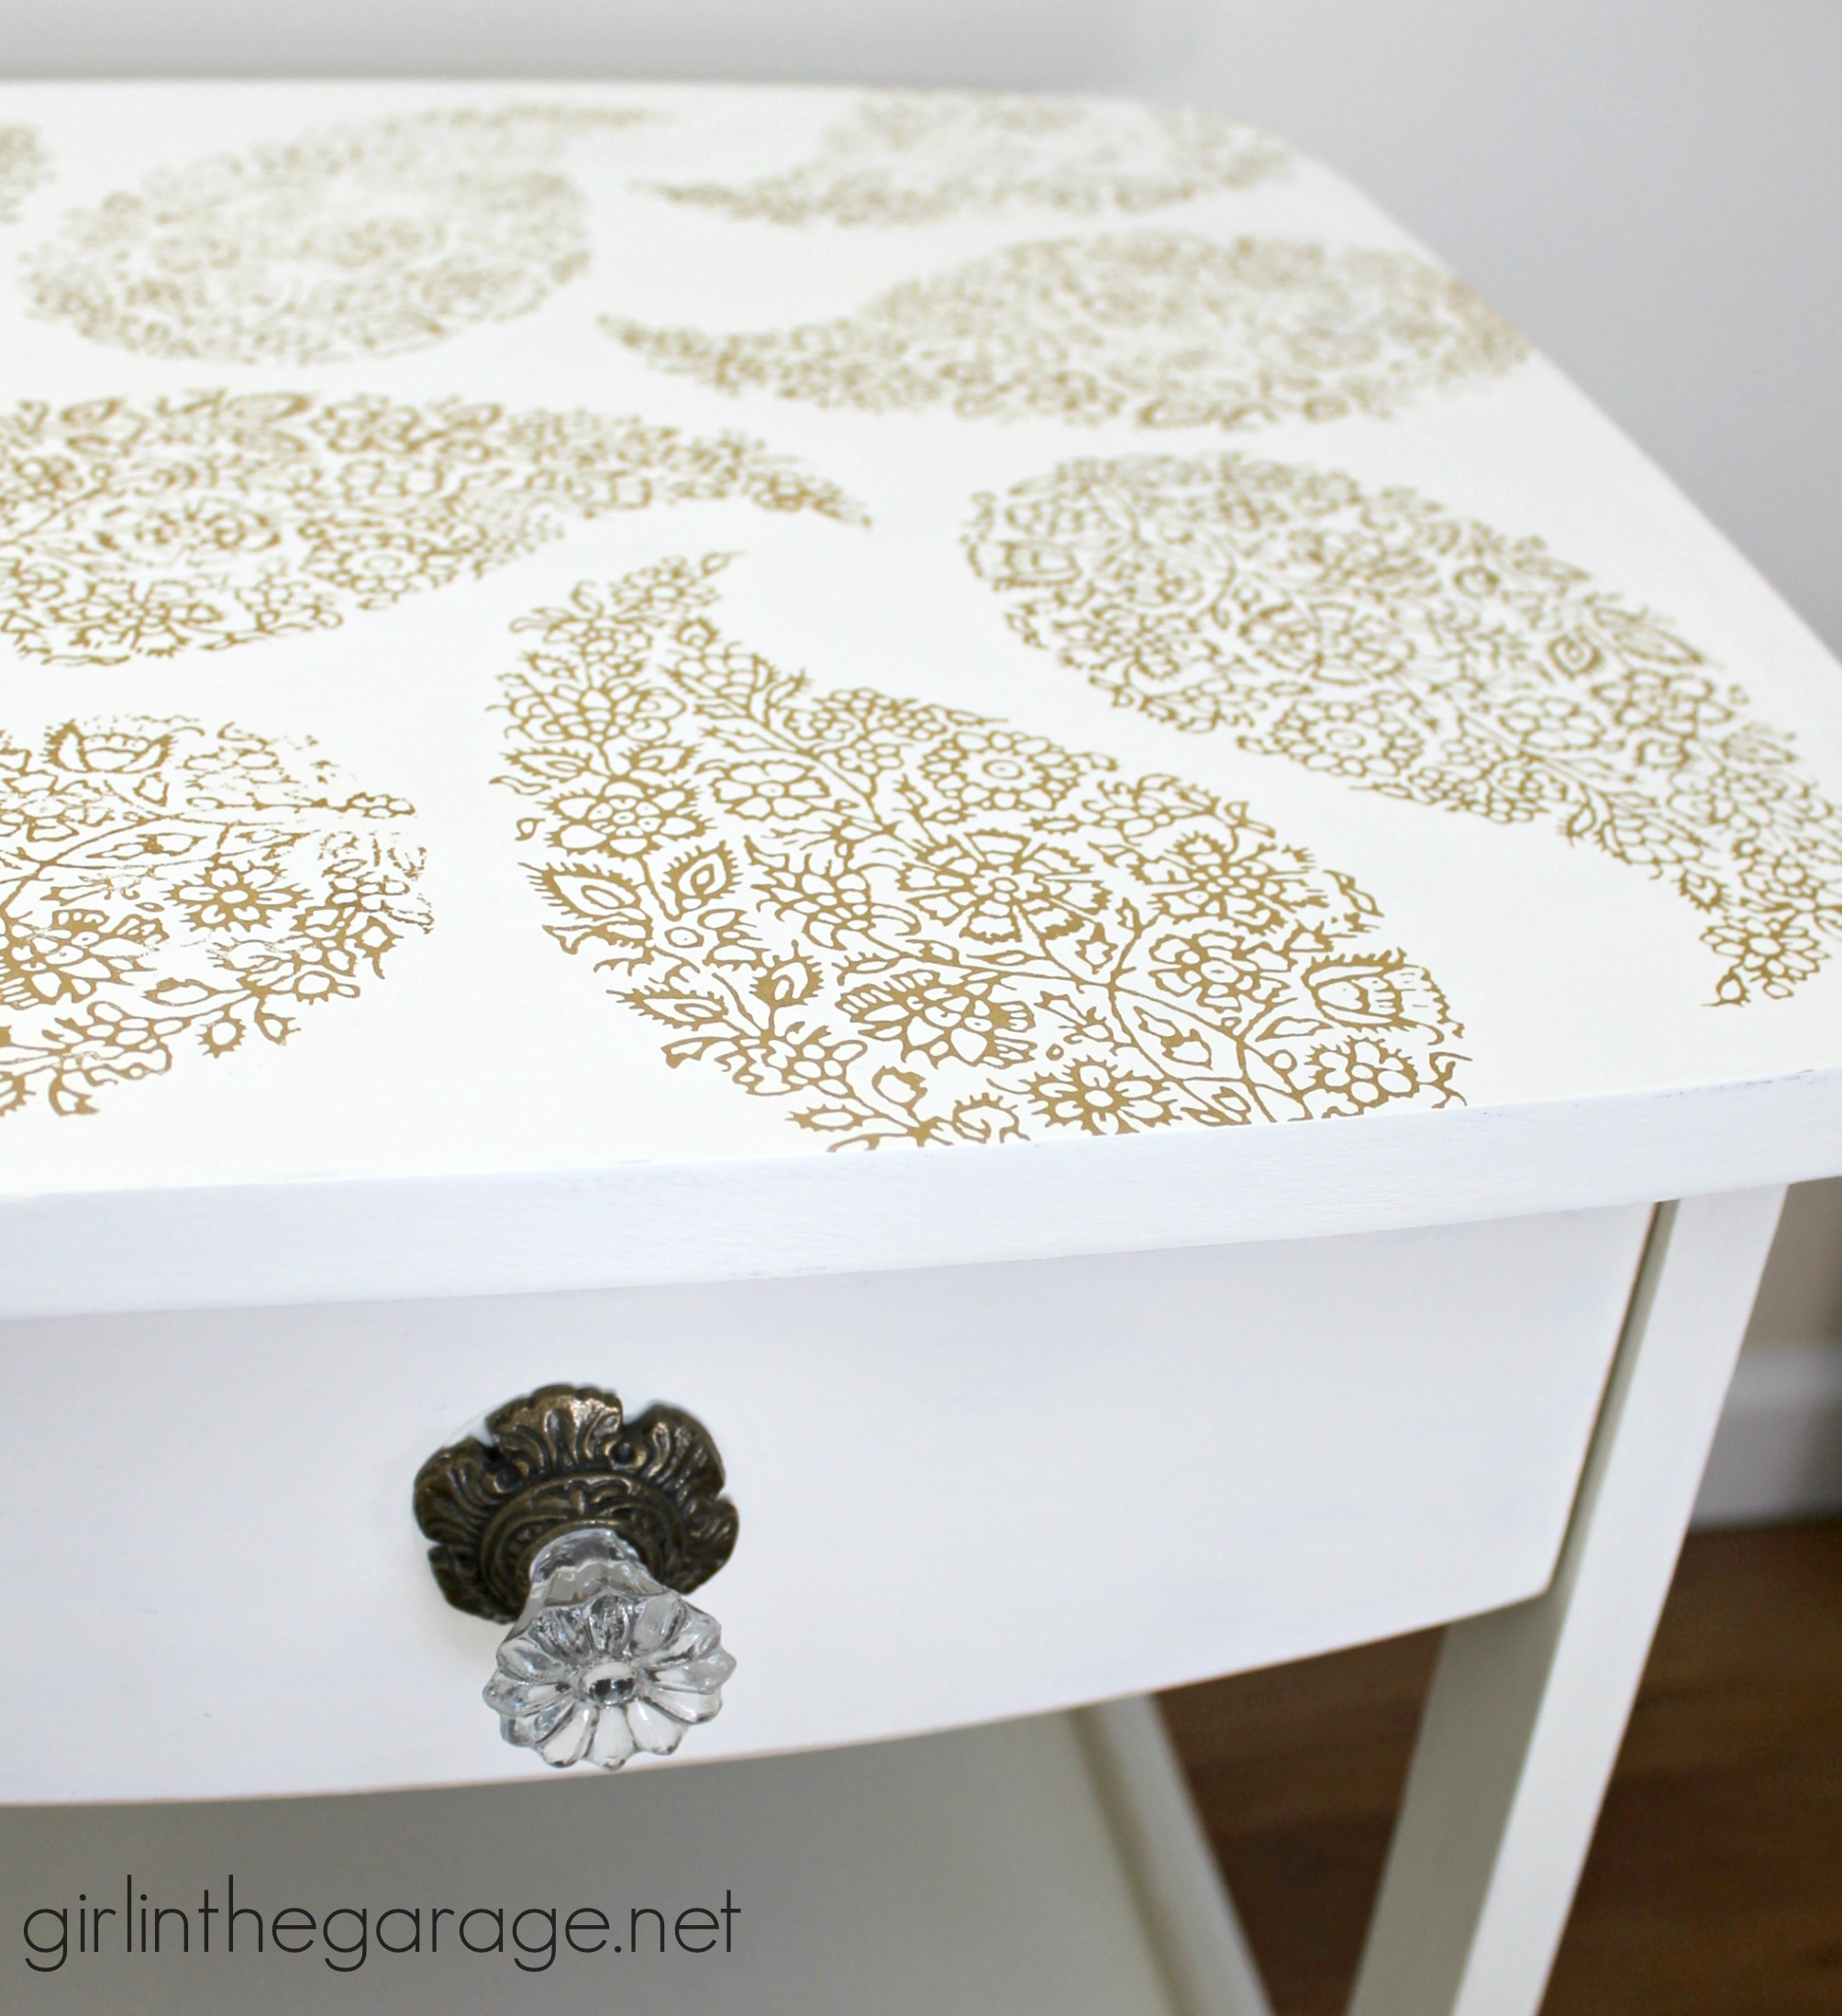 image stencils furniture painting. Pretty In Paisley {Romance Themed Furniture Makeover}: A Pair Of Plain Tables Gets Image Stencils Painting S